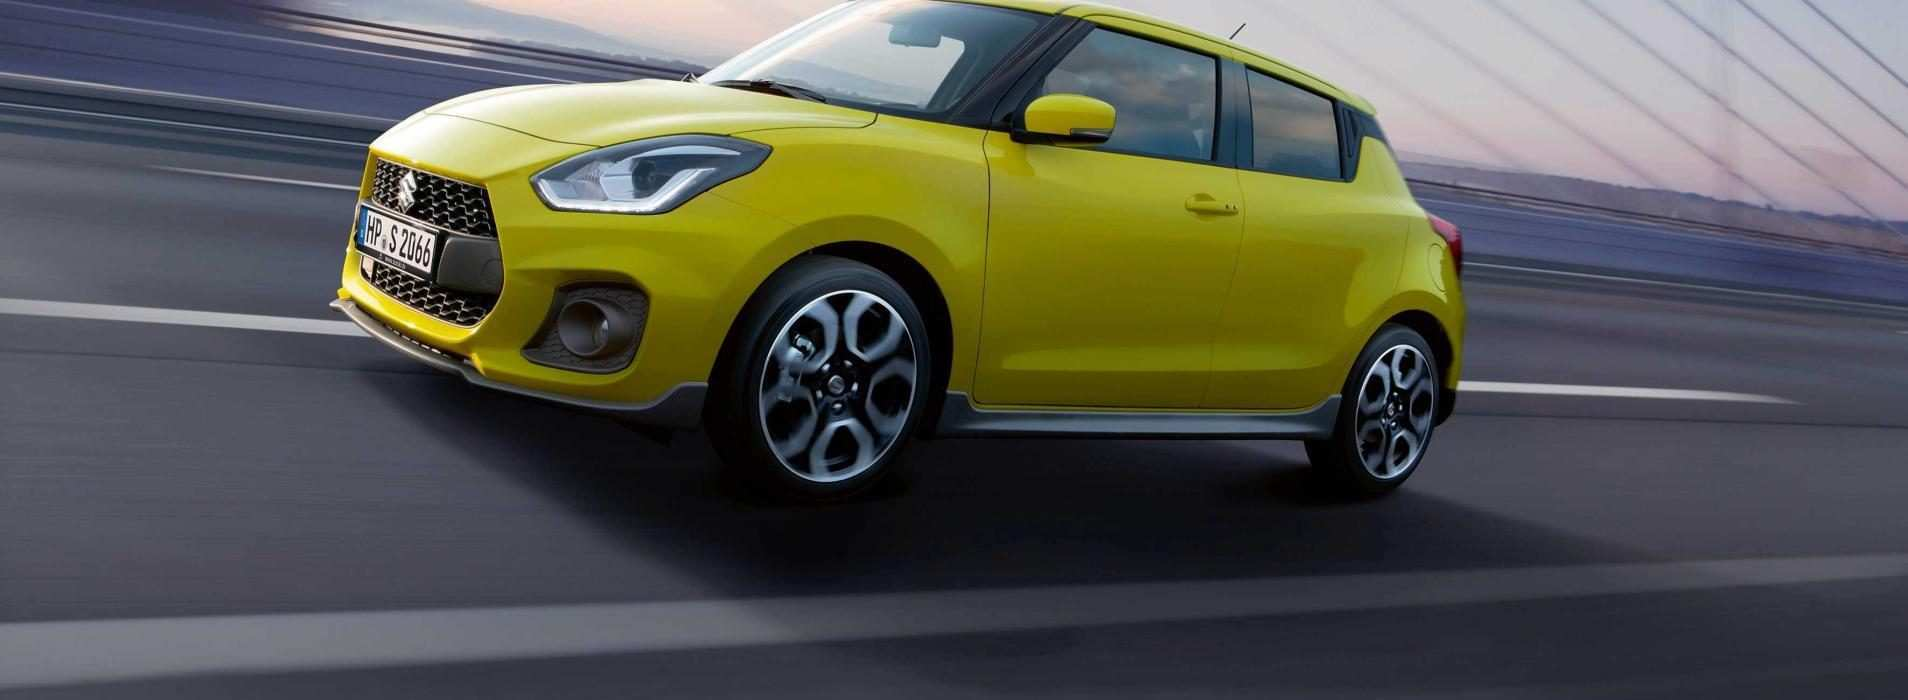 43 Best 2019 New Suzuki Swift Sport Images